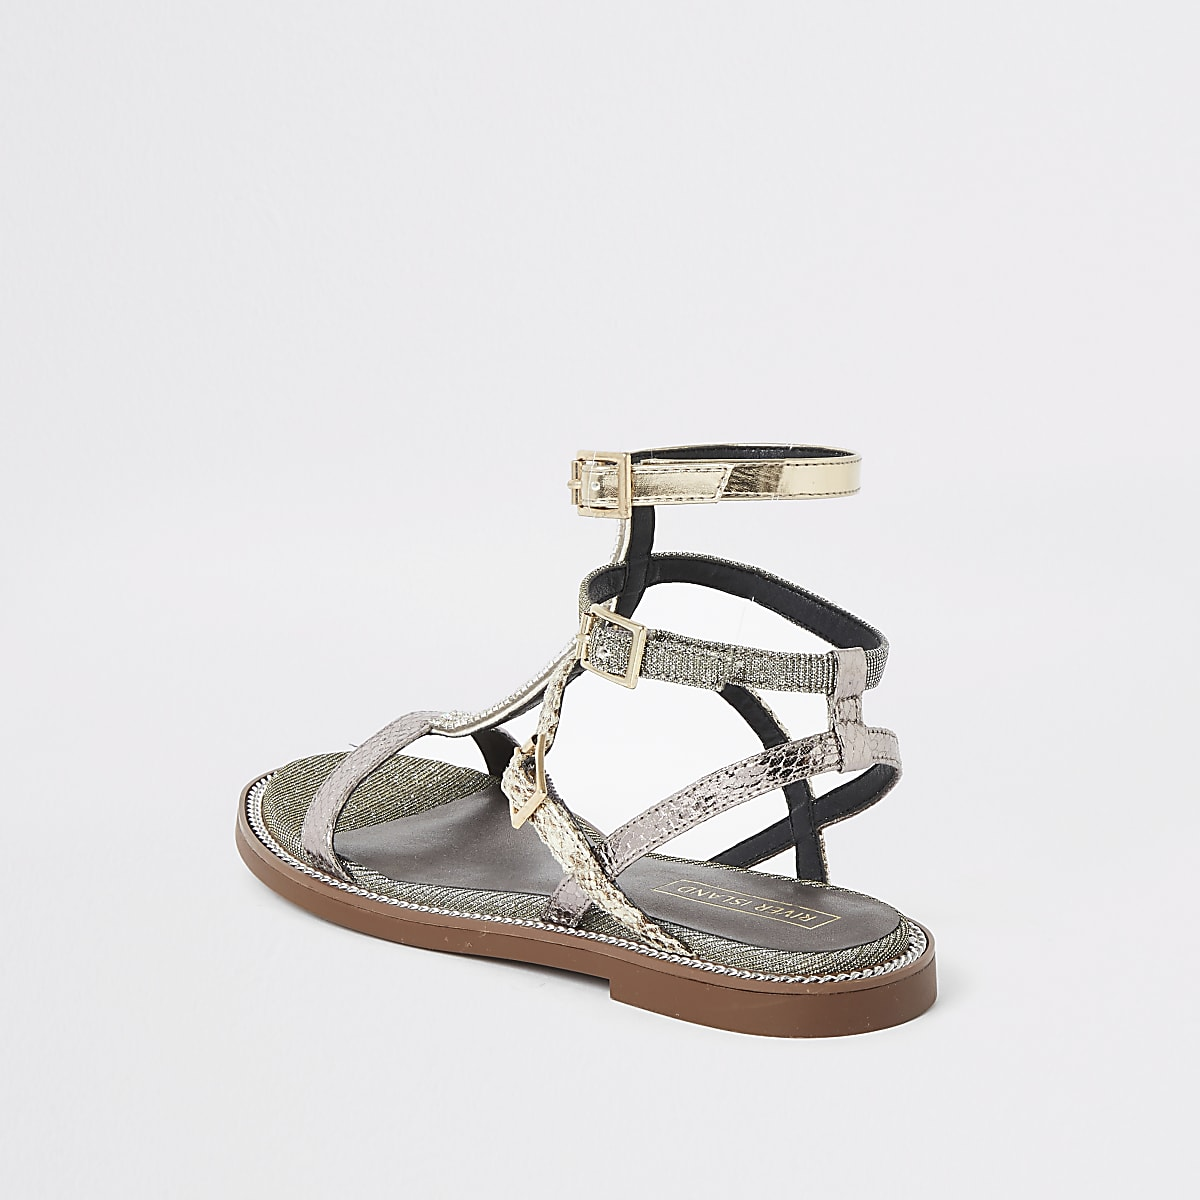 61e70d6e5ff6 Silver pearl wide fit gladiator sandals - Sandals - Shoes   Boots ...